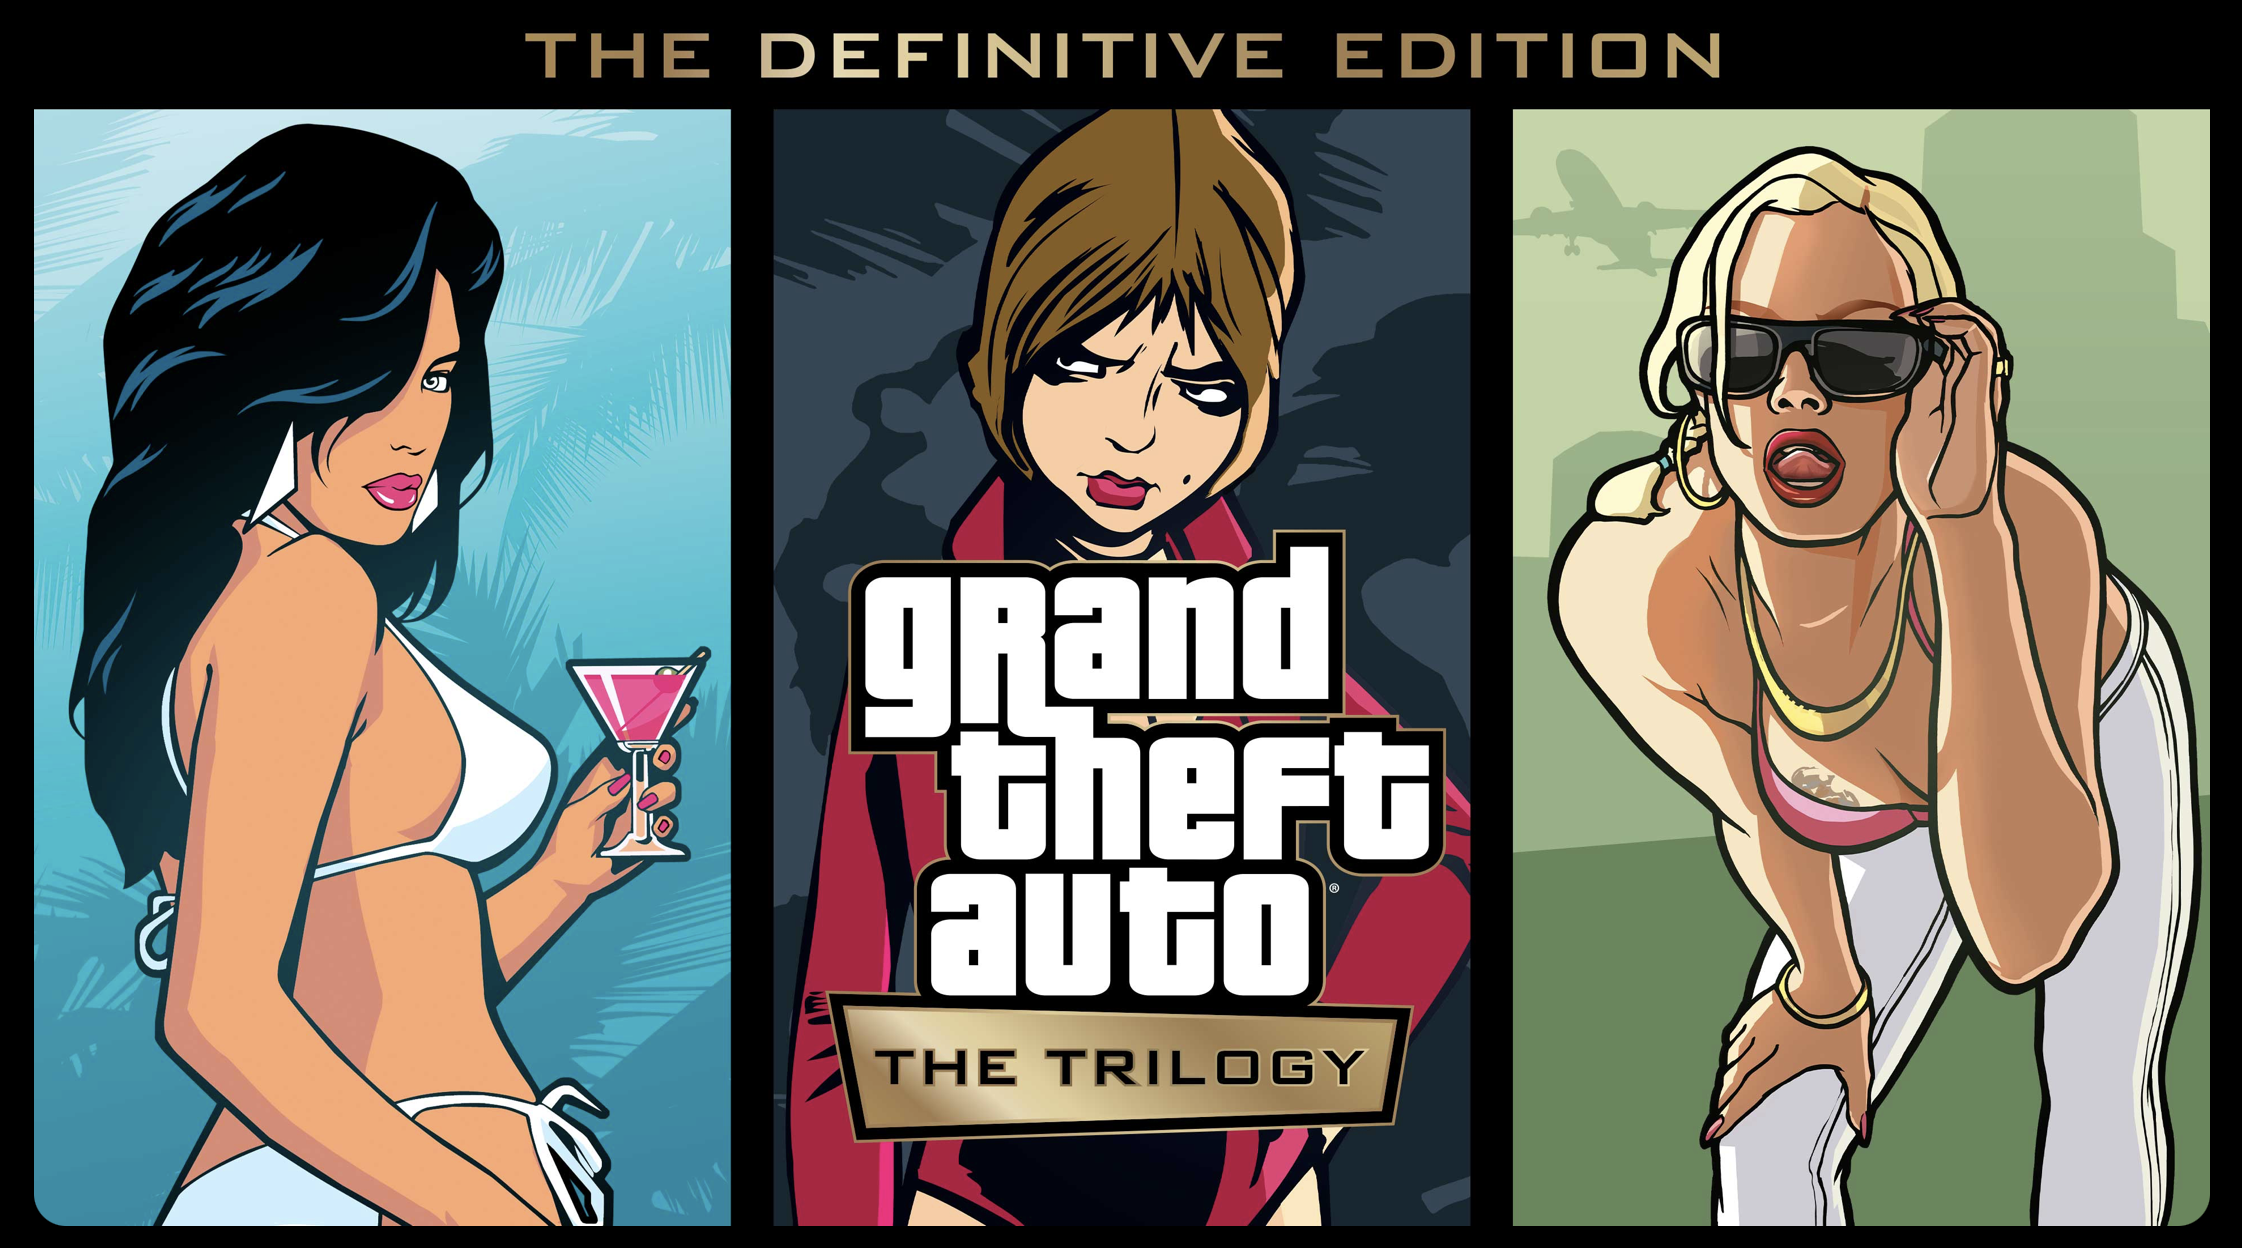 Grand Theft Auto: The Trilogy – The Definitive Edition 1